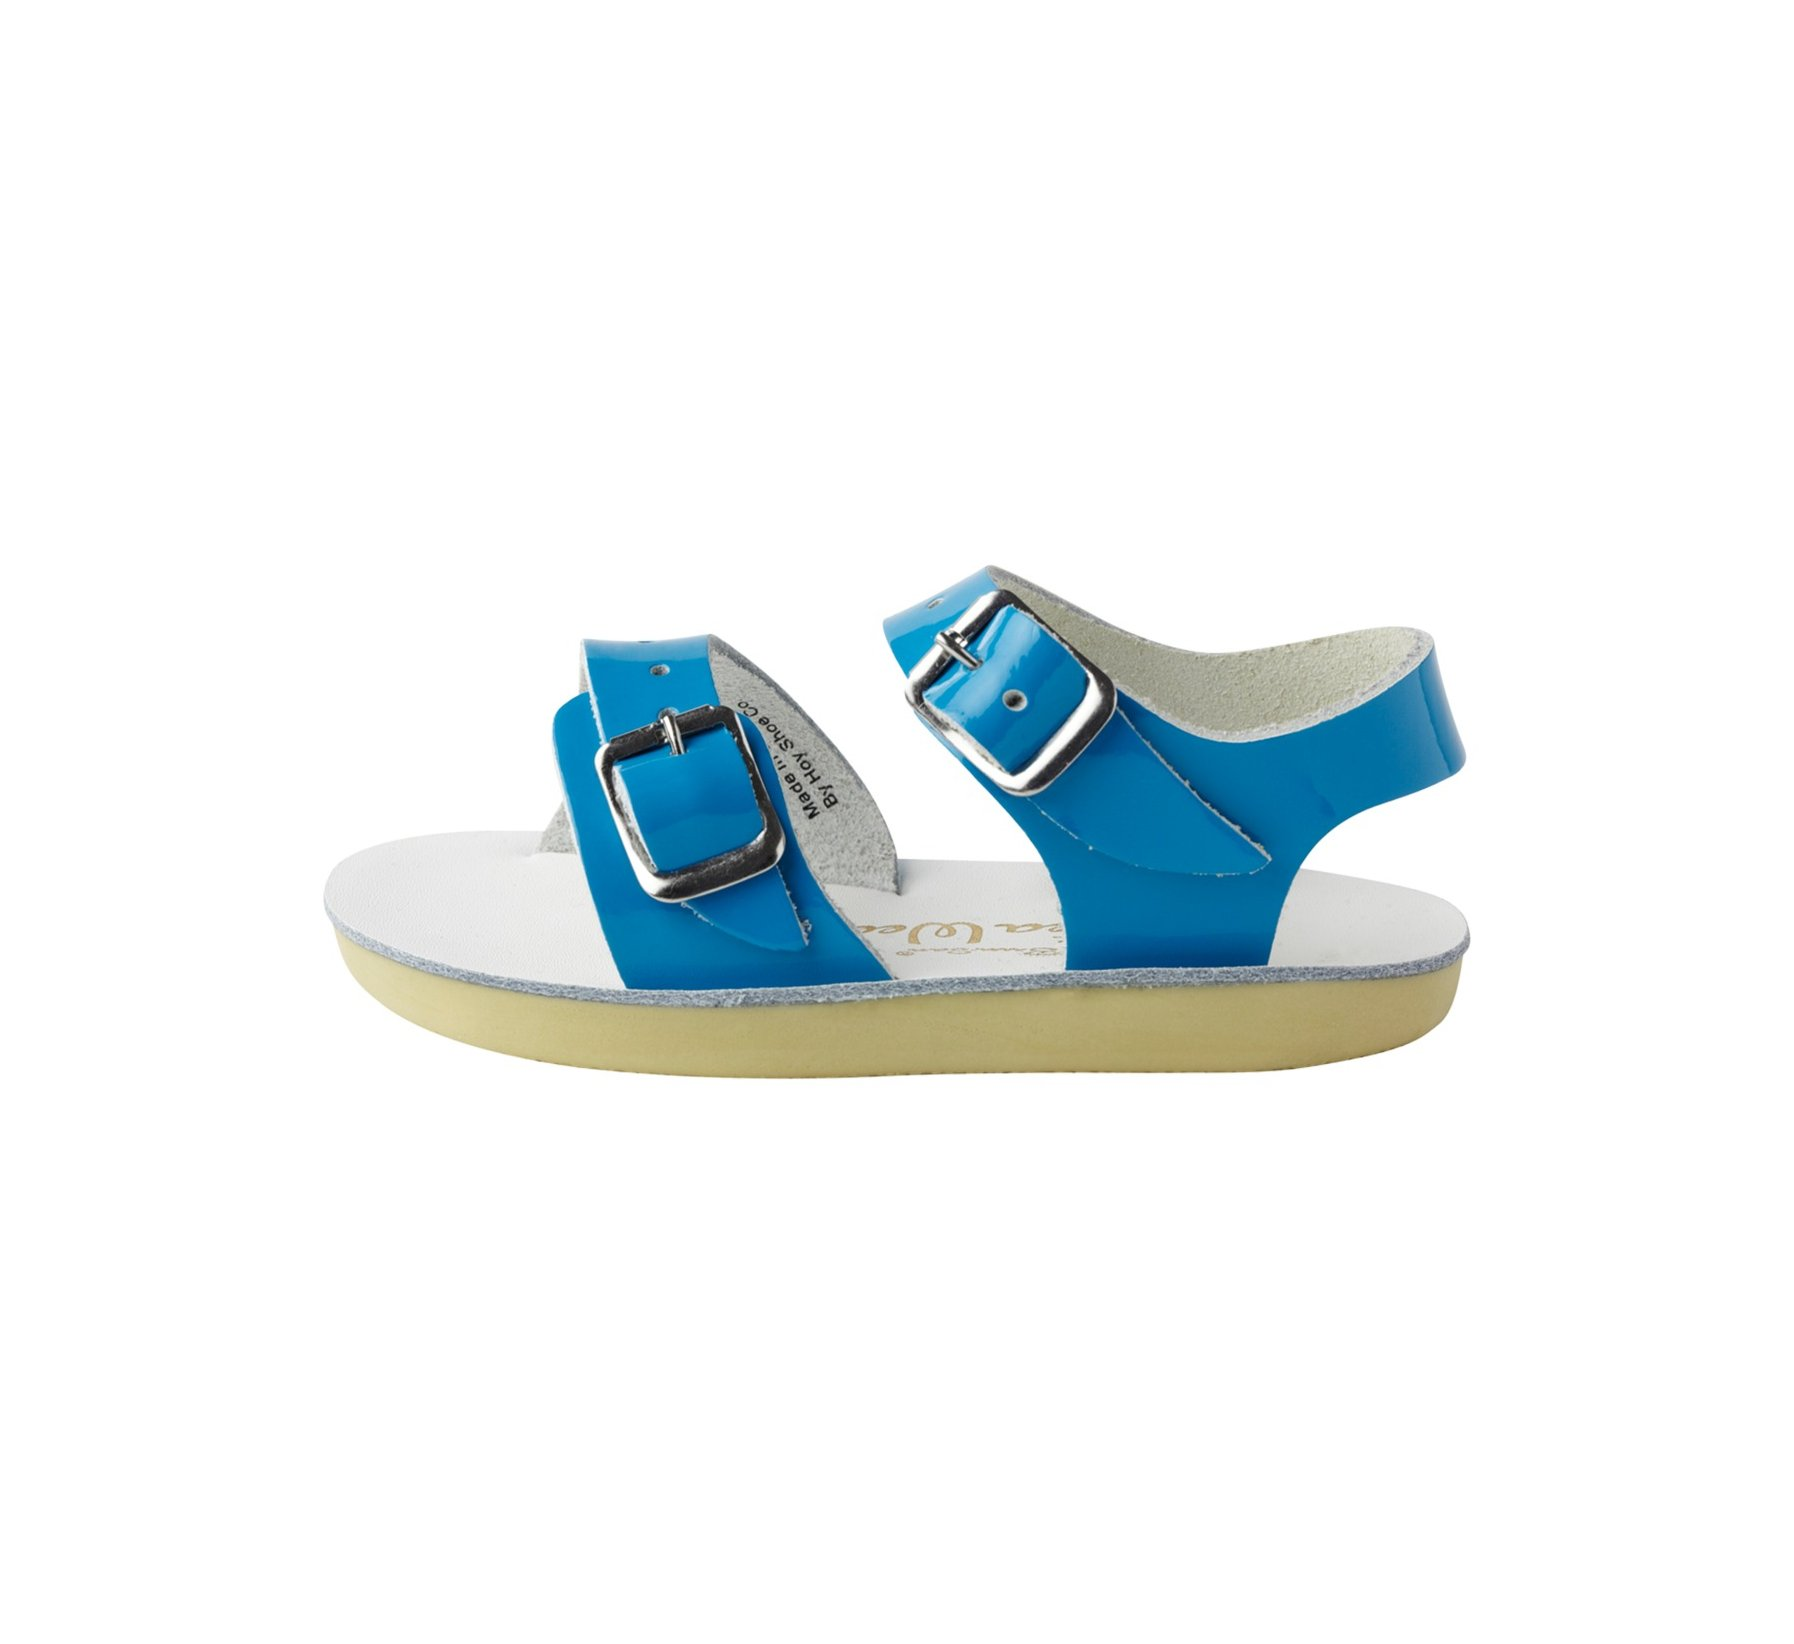 Seawee Shiny Turquoise  - Salt Water Sandals